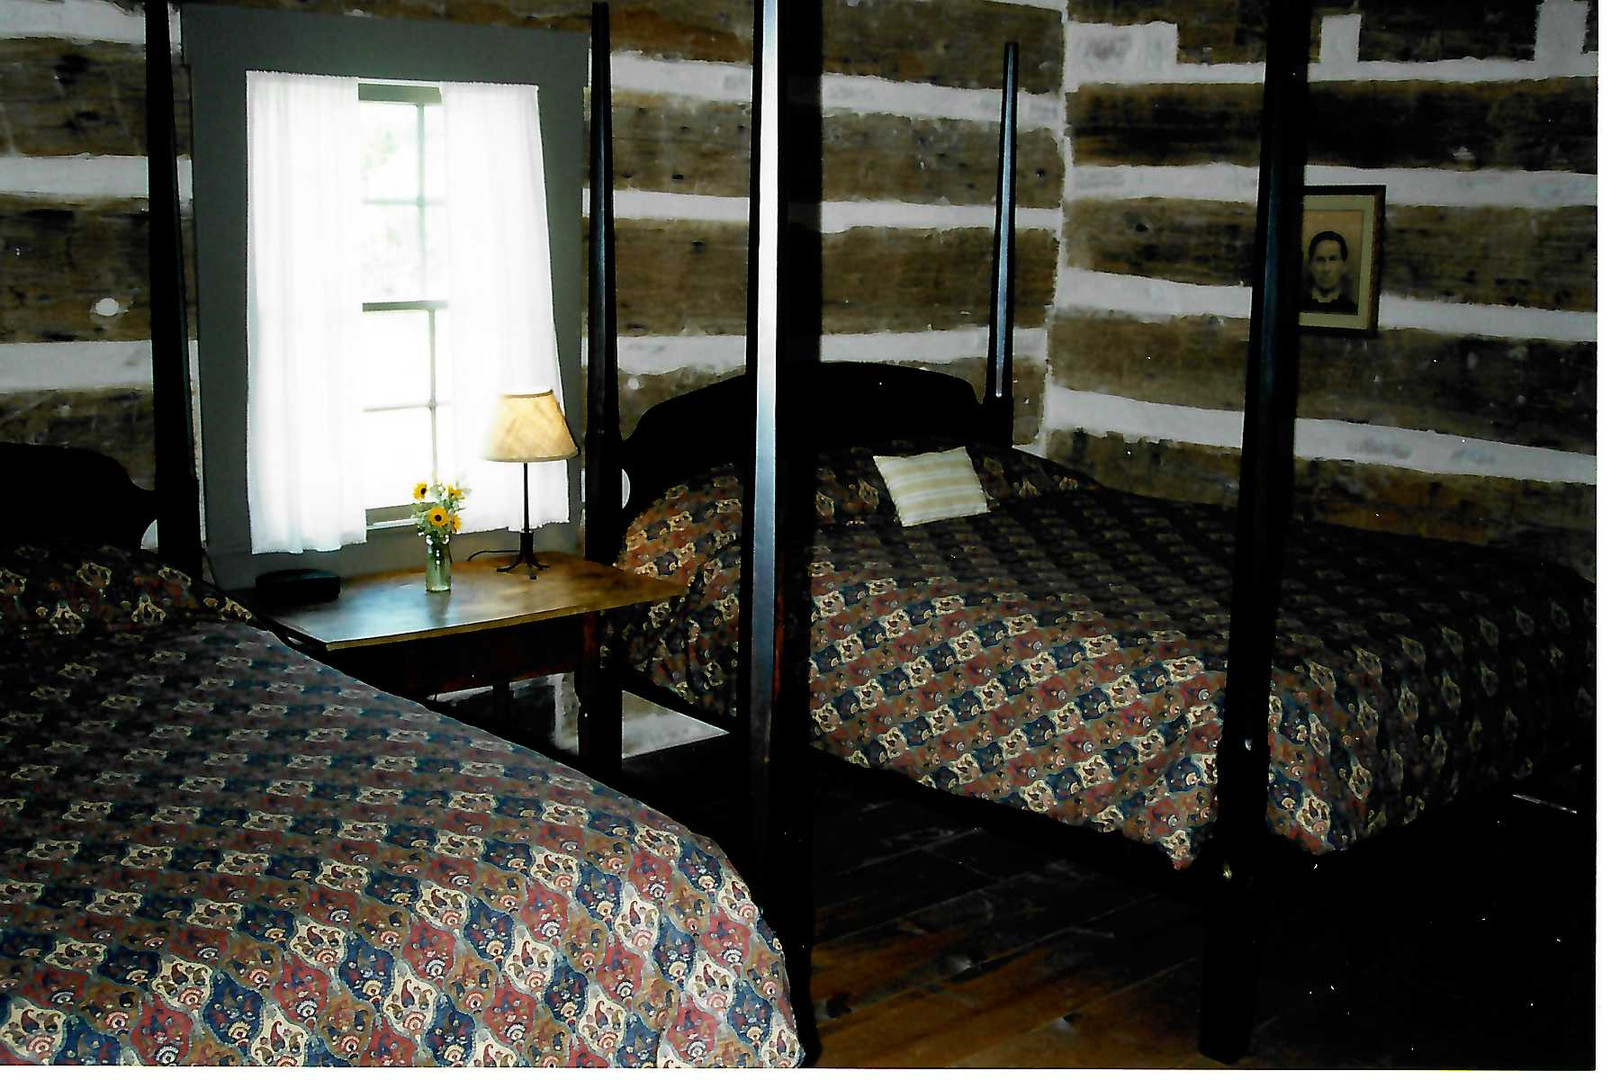 Left Bedroom of Log Cabin